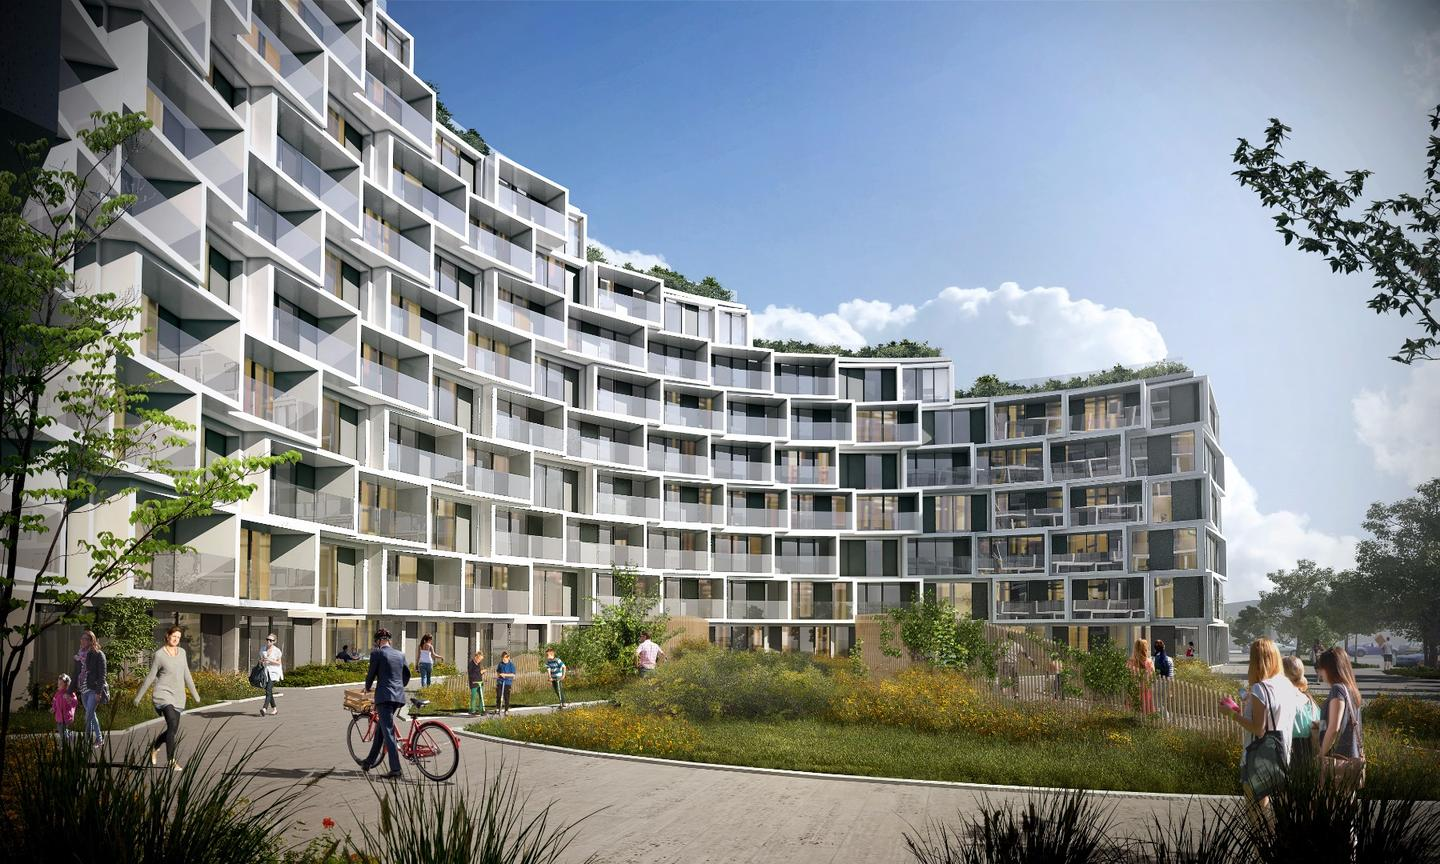 The lateral semi-circular design of La Tour affords room for an outdoor green space